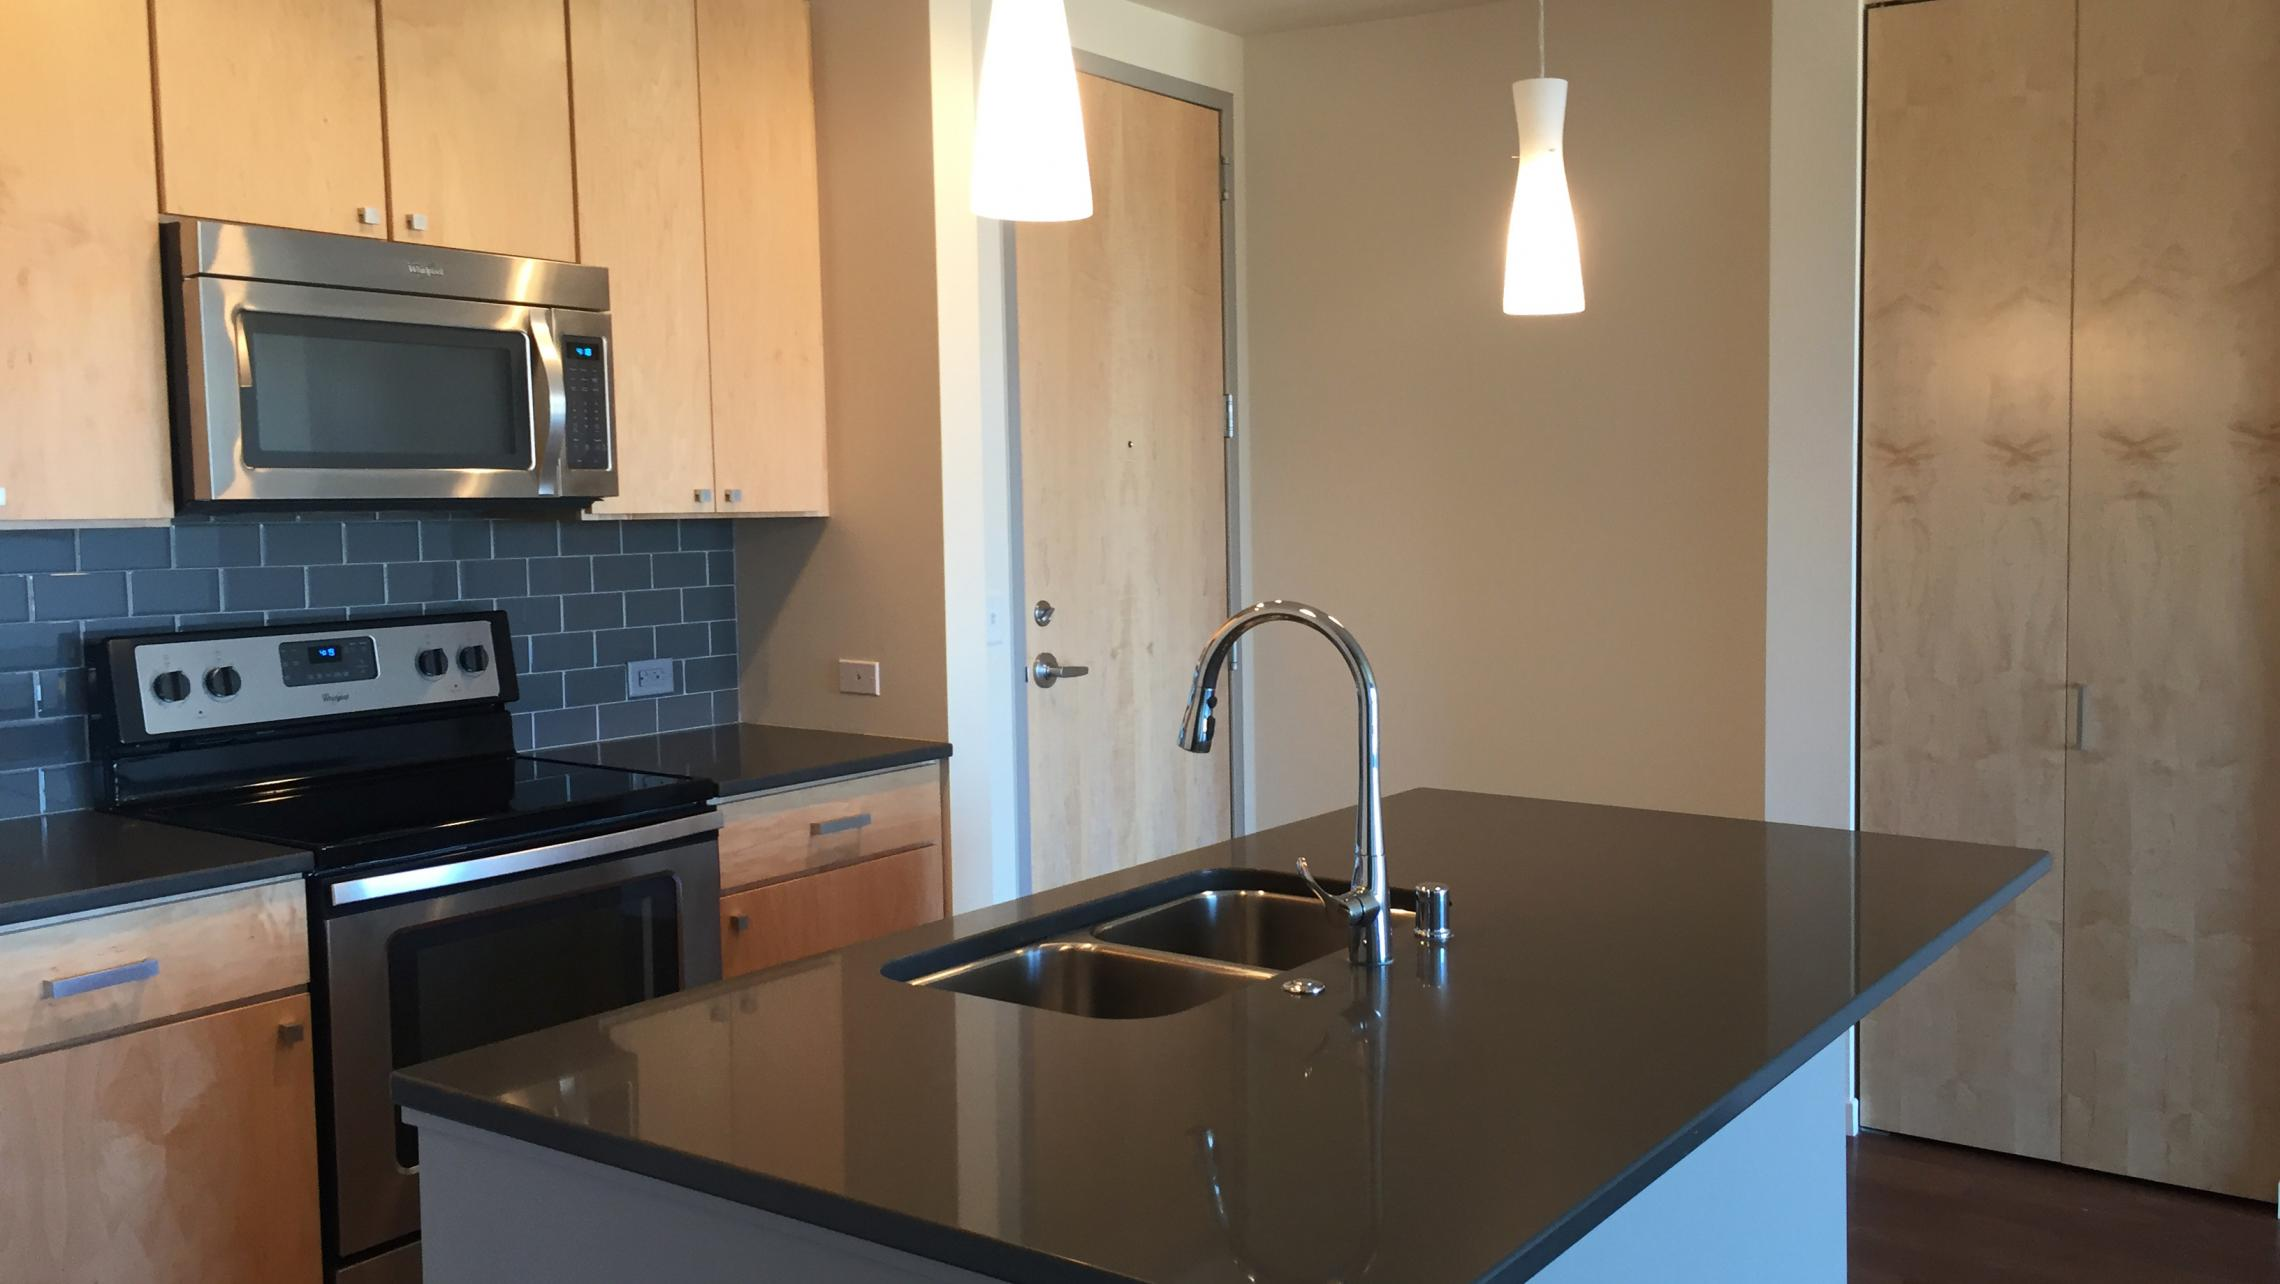 ULI Nine Line Apartment 521 - Kitchen with Stainless Steel Appliances